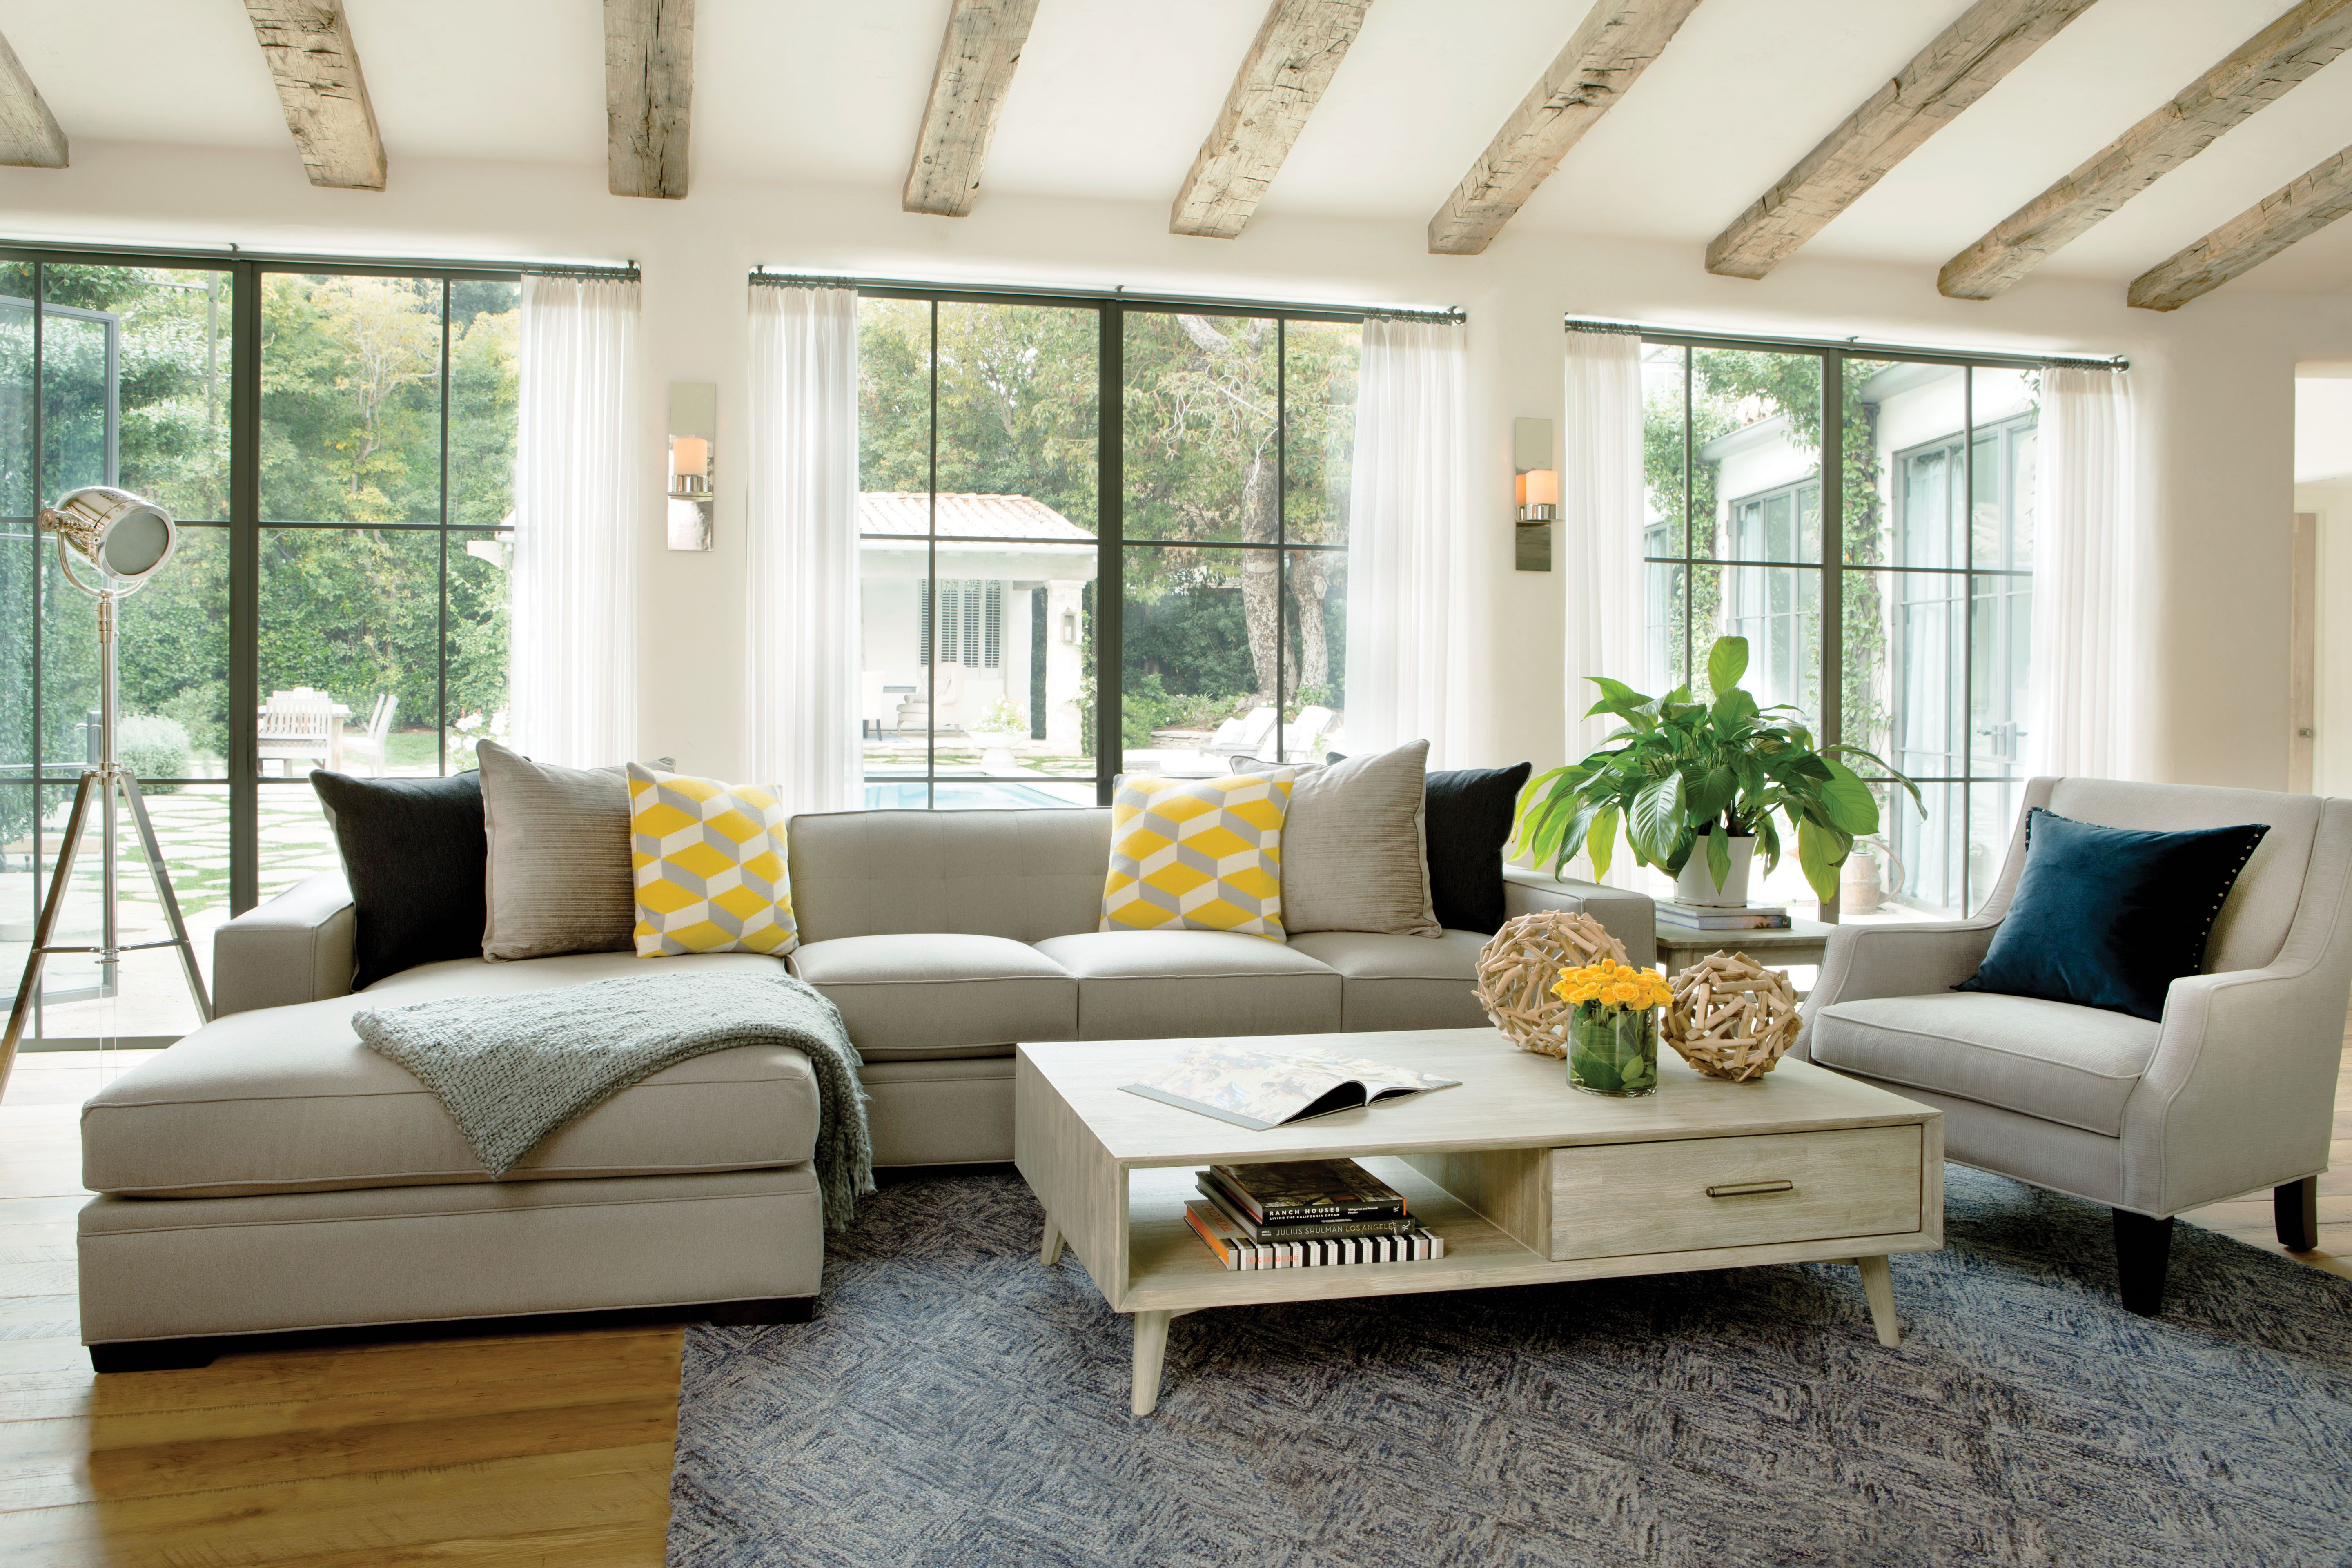 Creative Living Rooms For Style Inspiration Palette: Balance A More Masculine Color Palette With Bright Pops Of